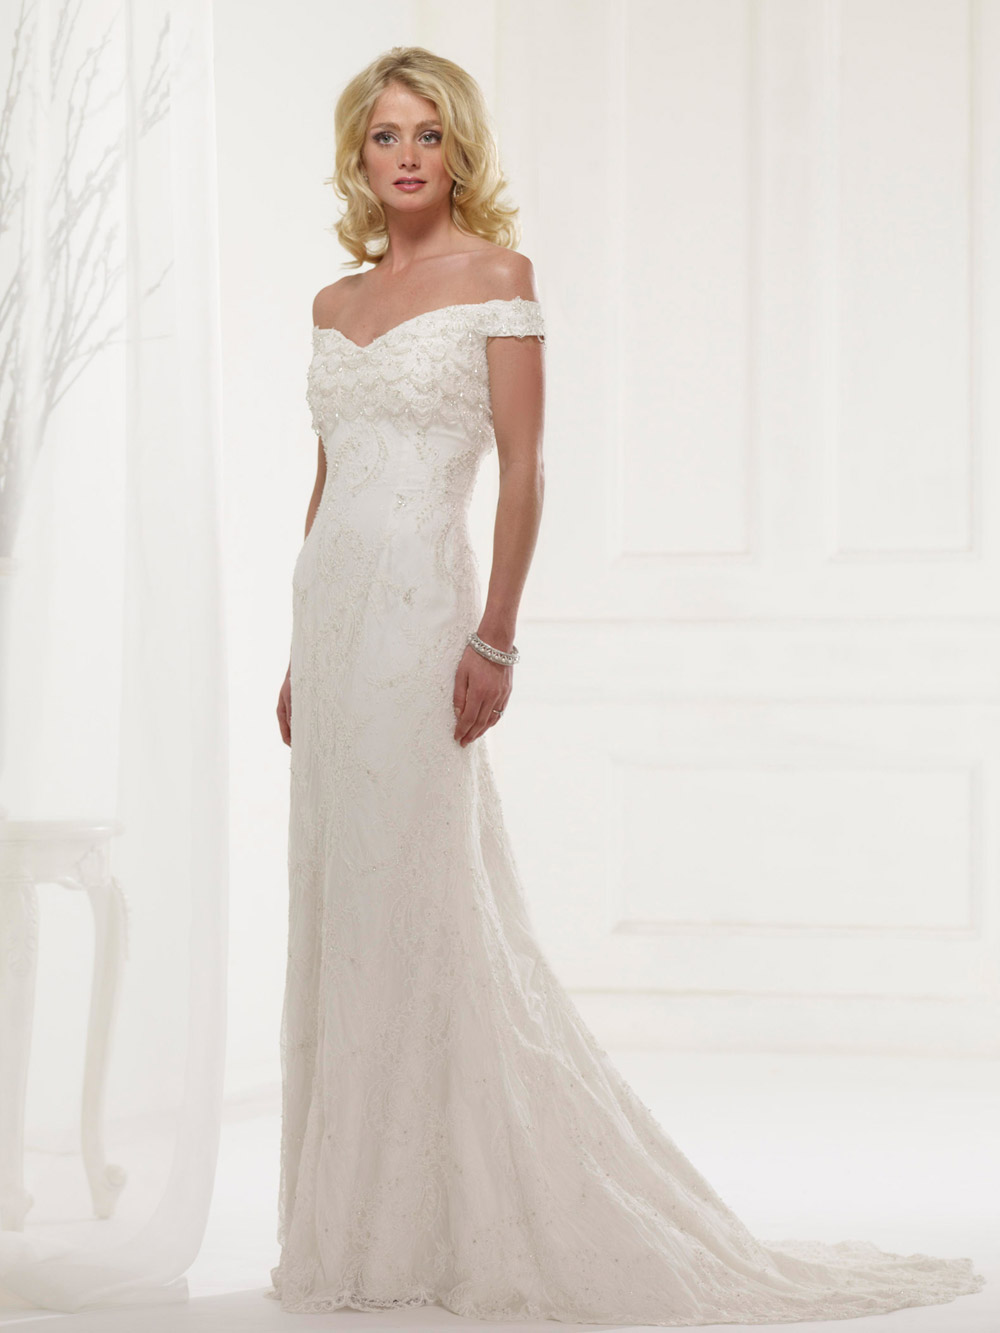 honey buy robert bullock 2012 wedding dresses With robert bullock wedding dresses